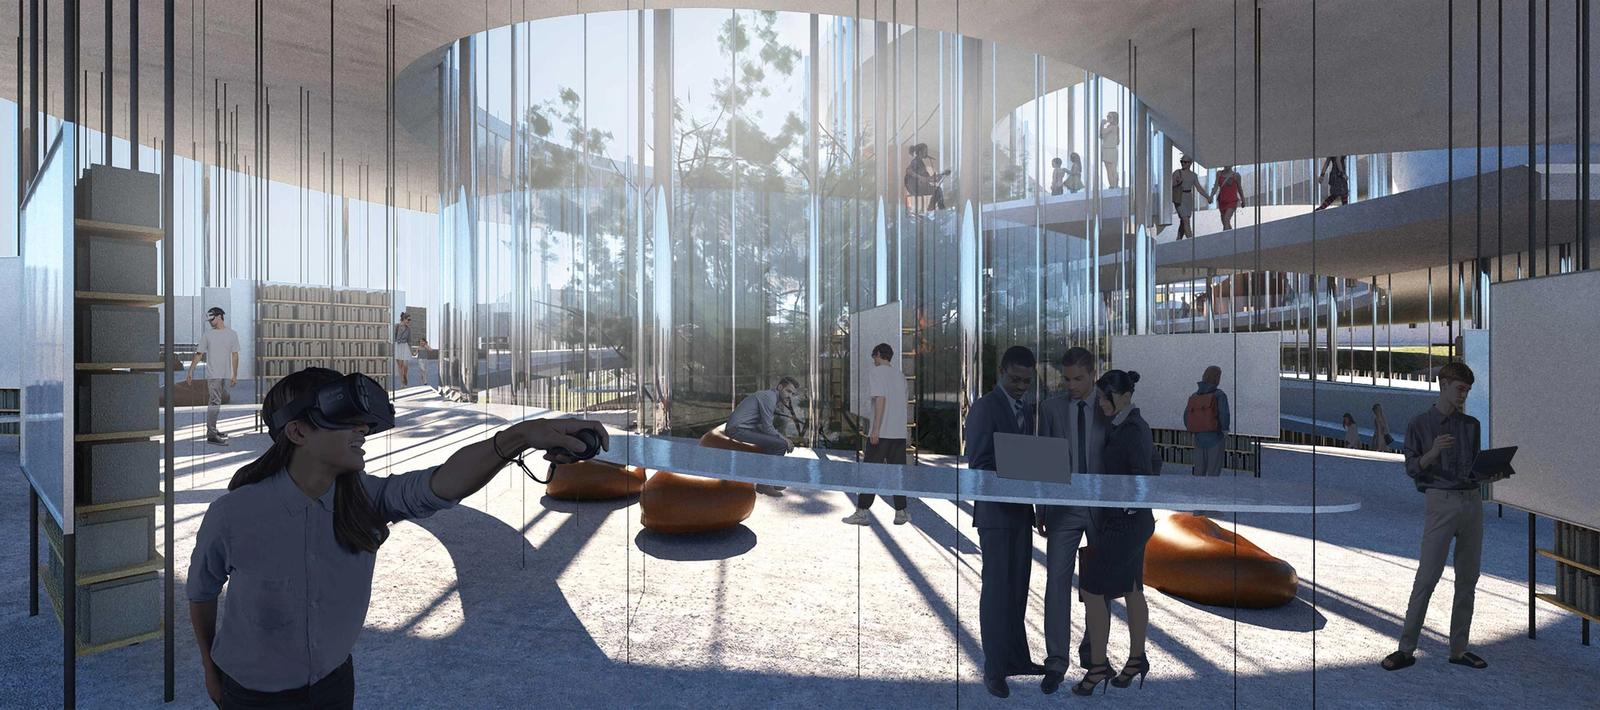 Outer Mission Ramp Library Interior Rendering - Digital Natives Learning Area